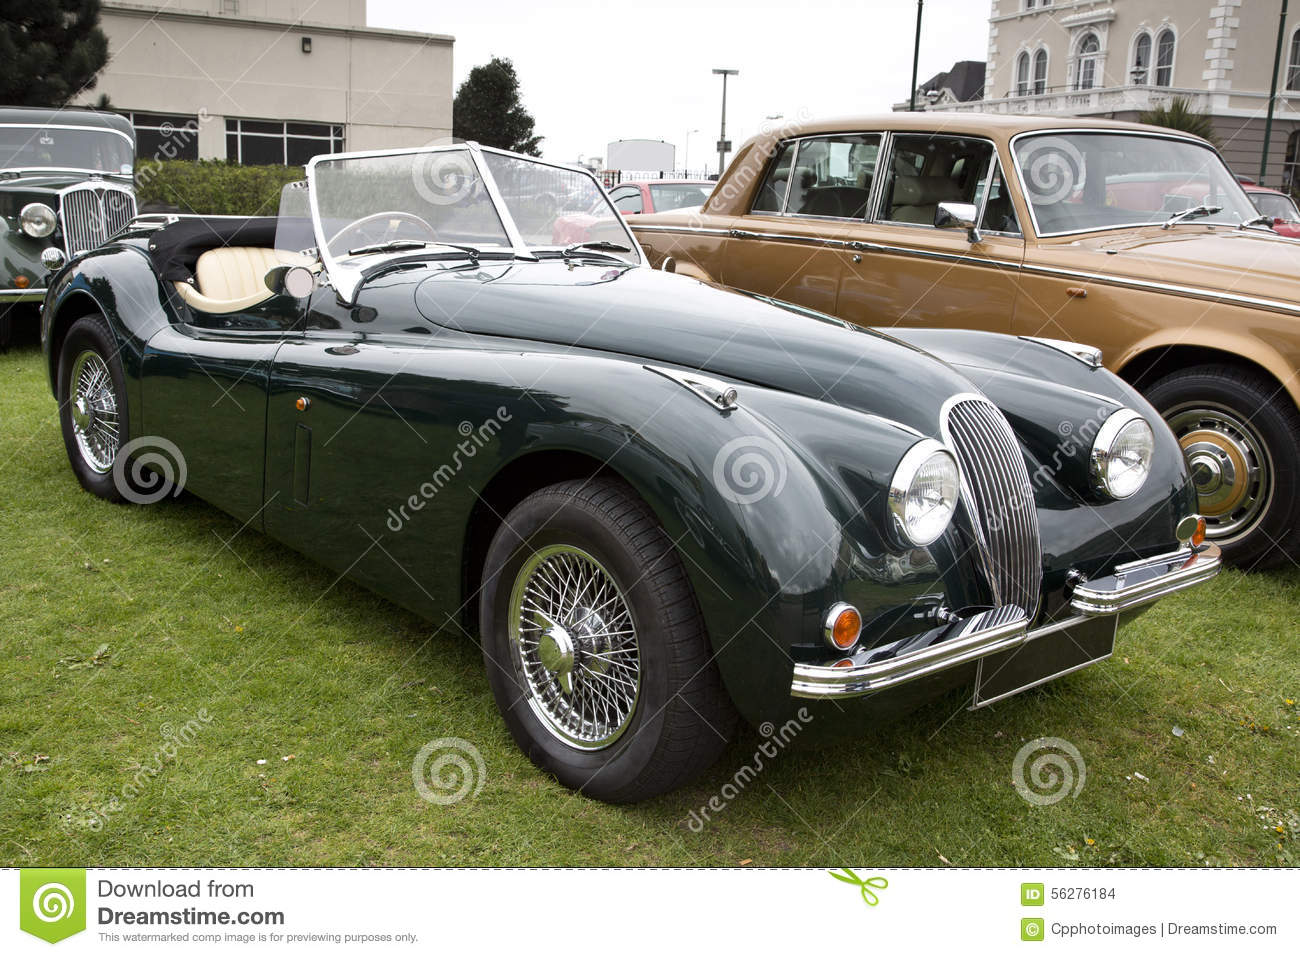 British Soft Top Classic Car Stock Photo - Image: 56276184